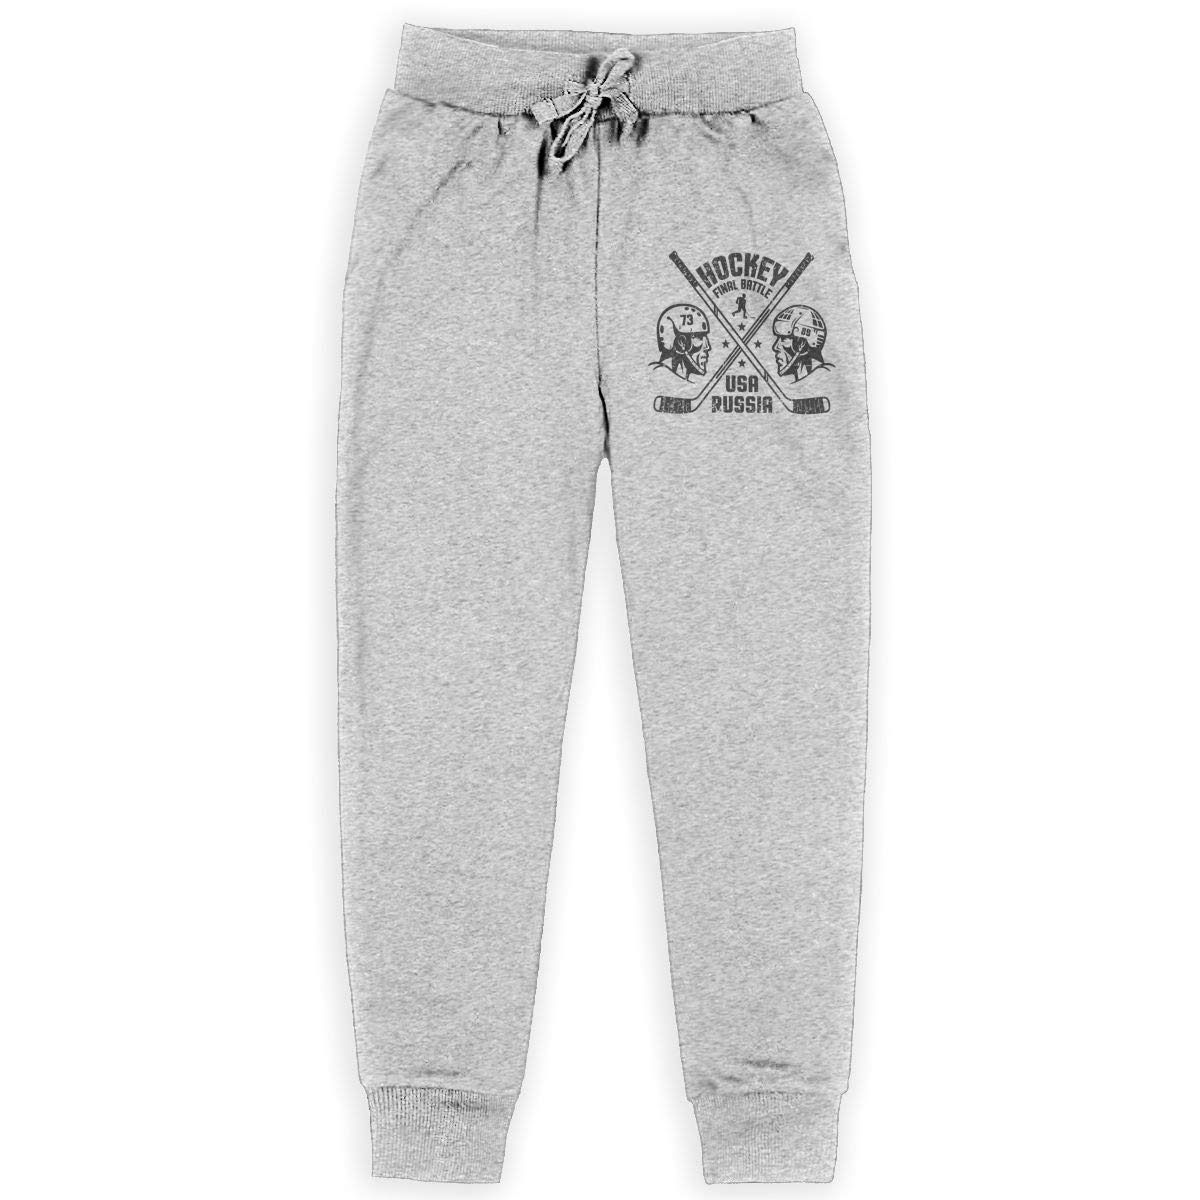 Boys Casual Sweatpants Two Hockey Players Adjustable Waist Running Pants with Pocket